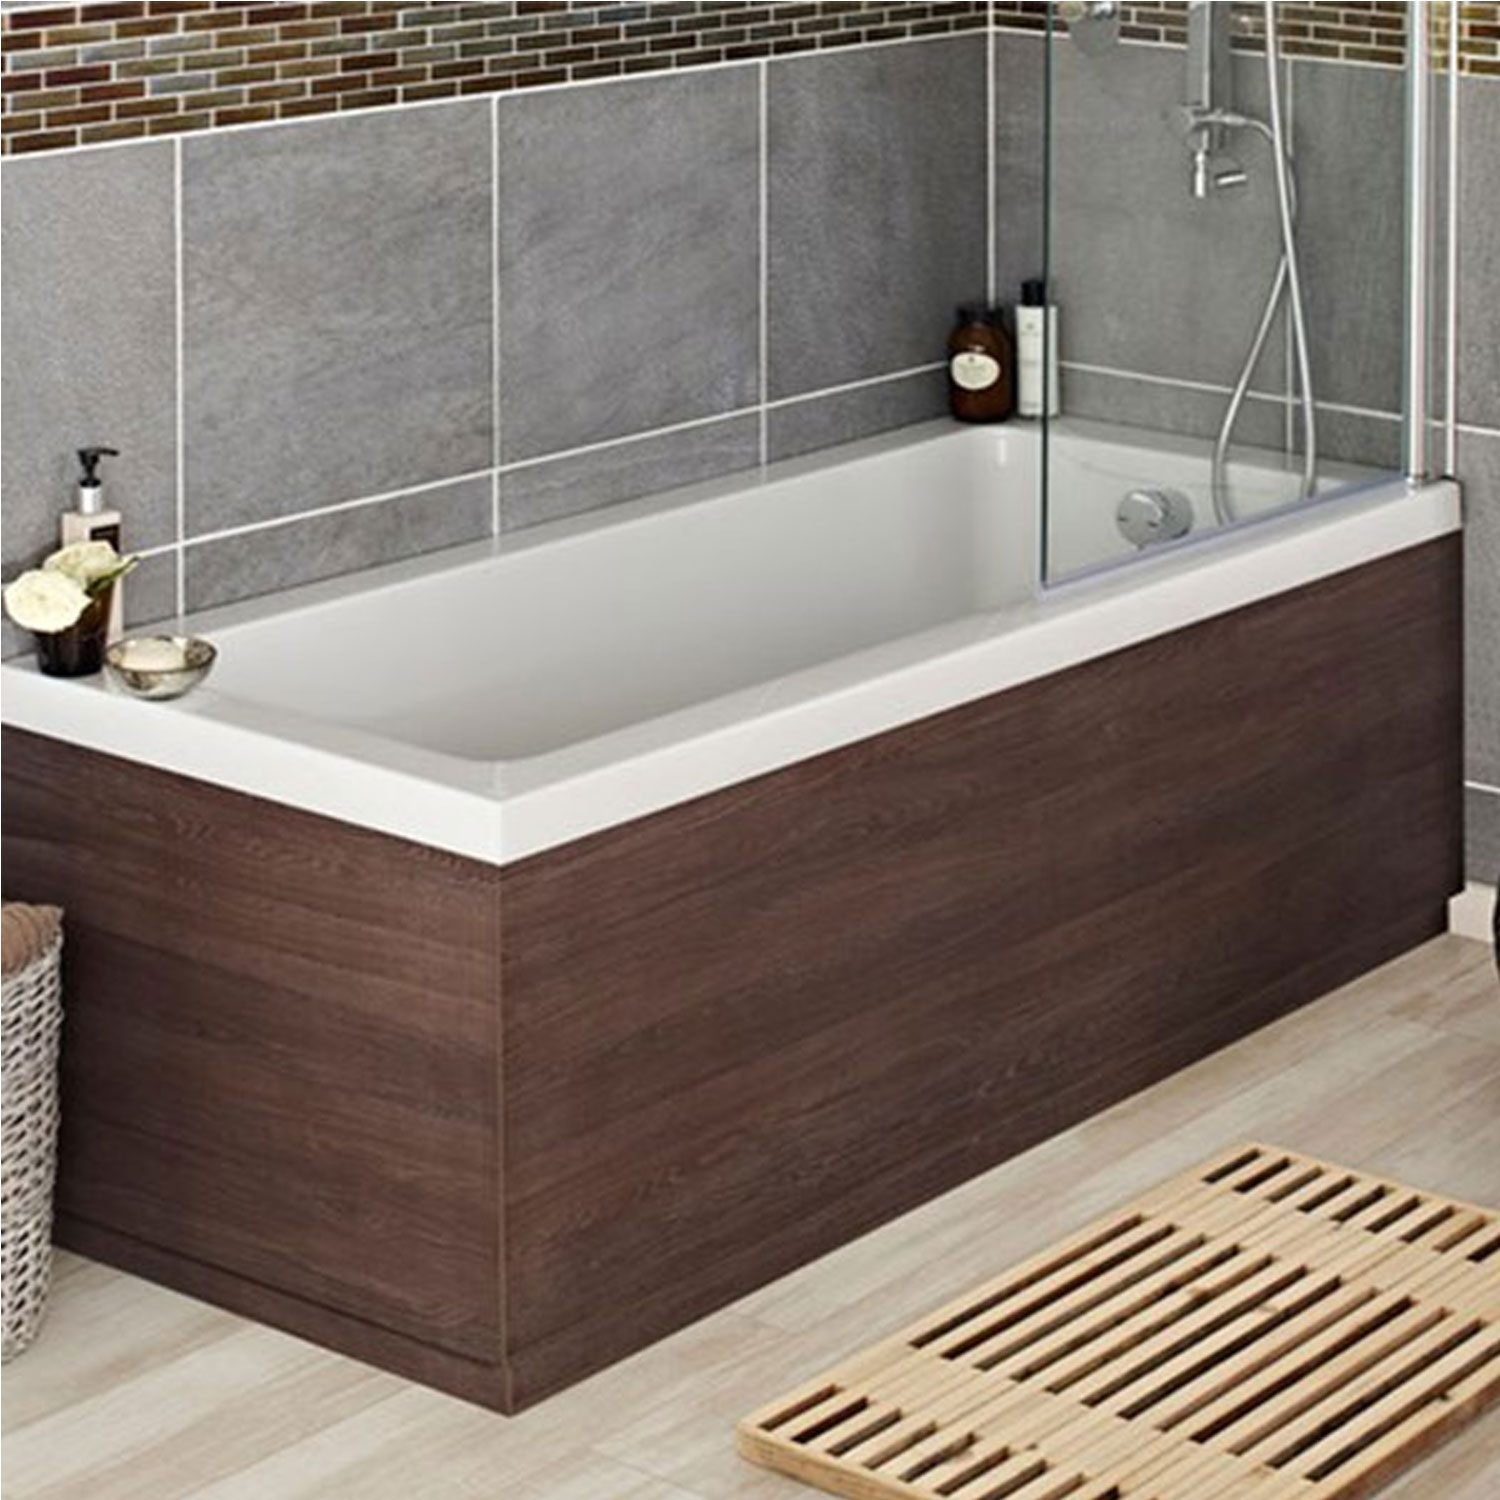 hudson reed mdf oak bath front panel 1700mm wide. Black Bedroom Furniture Sets. Home Design Ideas